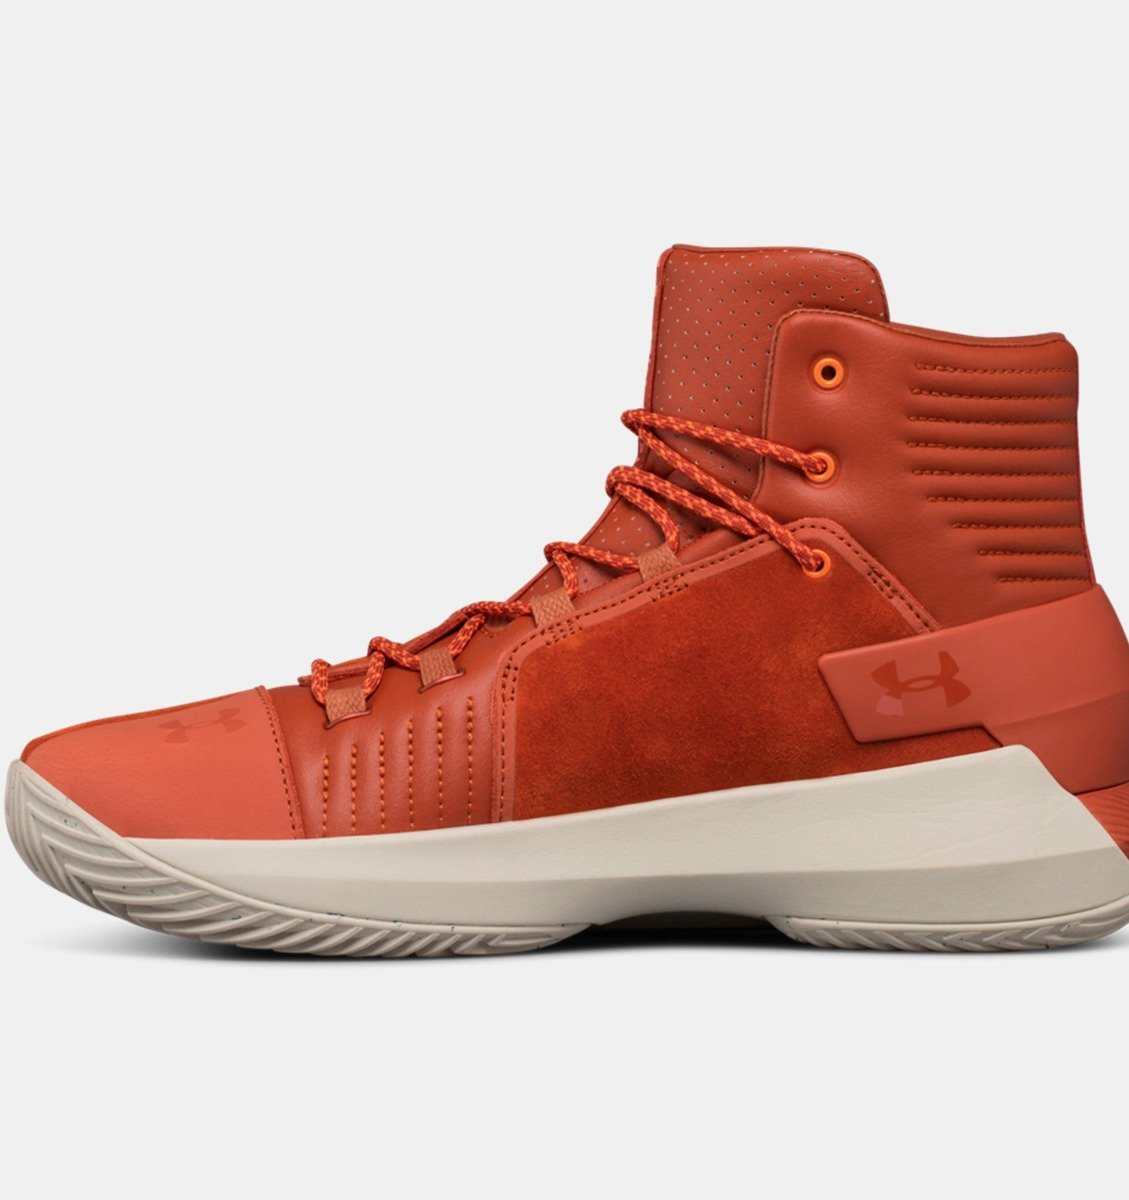 bfa7af62ac5 ... Under Armour Drive 4 Premium Basketball shoes - 1302941-840 ...